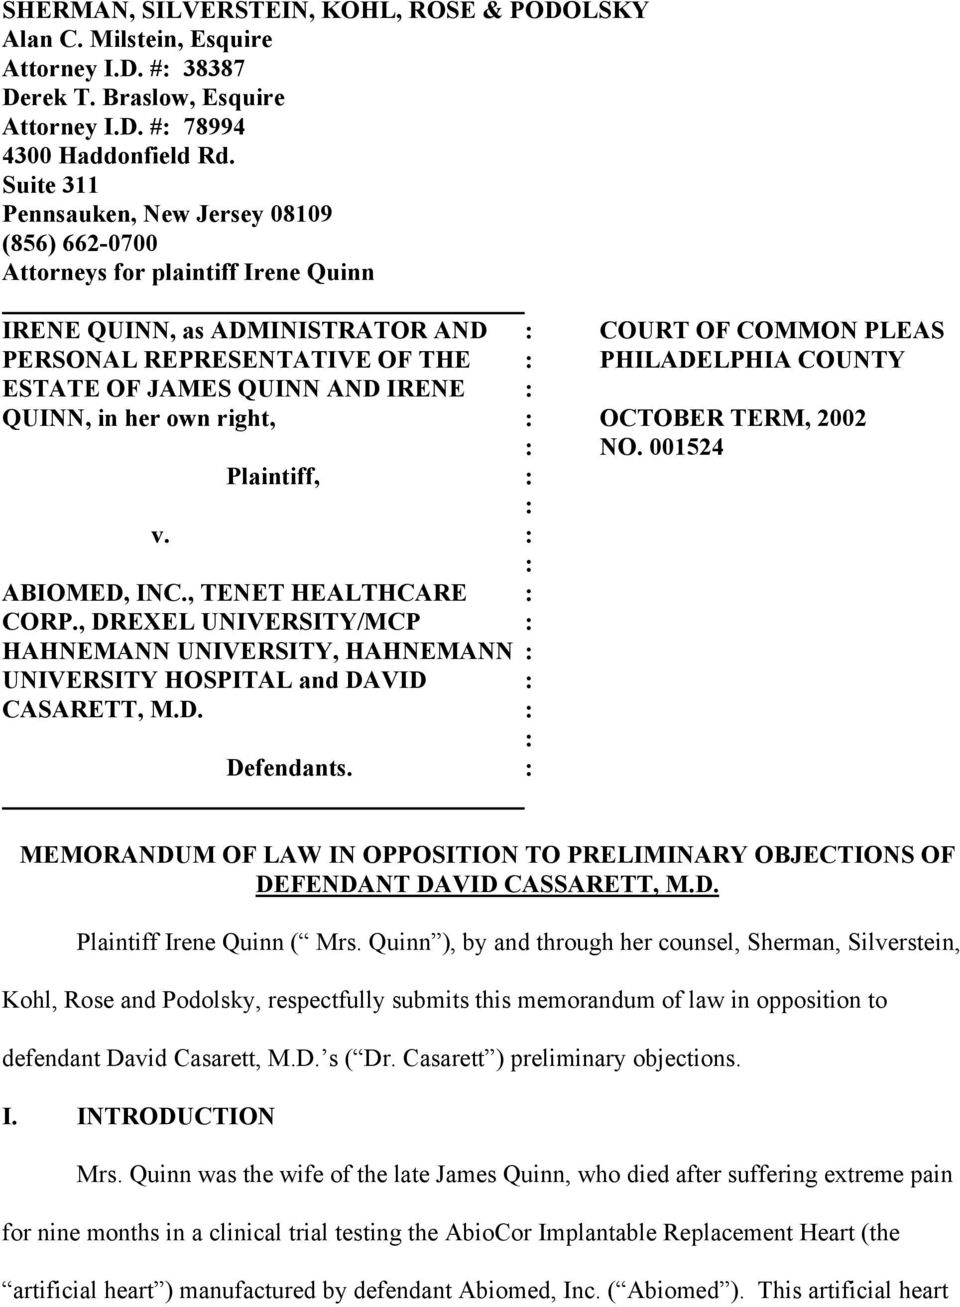 COUNTY ESTATE OF JAMES QUINN AND IRENE : QUINN, in her own right, : OCTOBER TERM, 2002 : NO. 001524 Plaintiff, : : v. : : ABIOMED, INC., TENET HEALTHCARE : CORP.